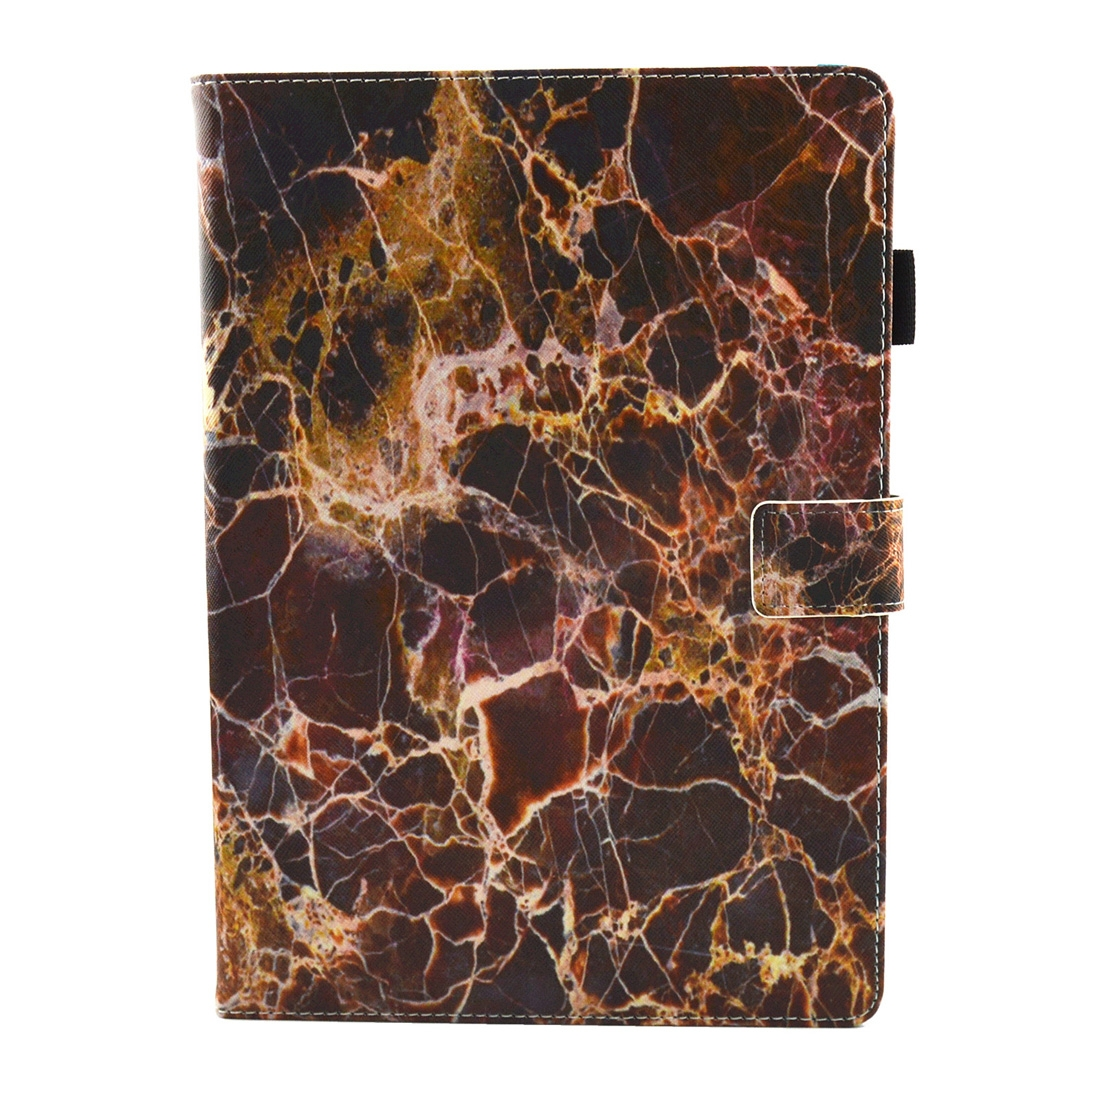 iPad Air 3 Case (10.5 Inch) Brown Marble Pattern Leather Protective Case, Pen Holder With Auto Sleep